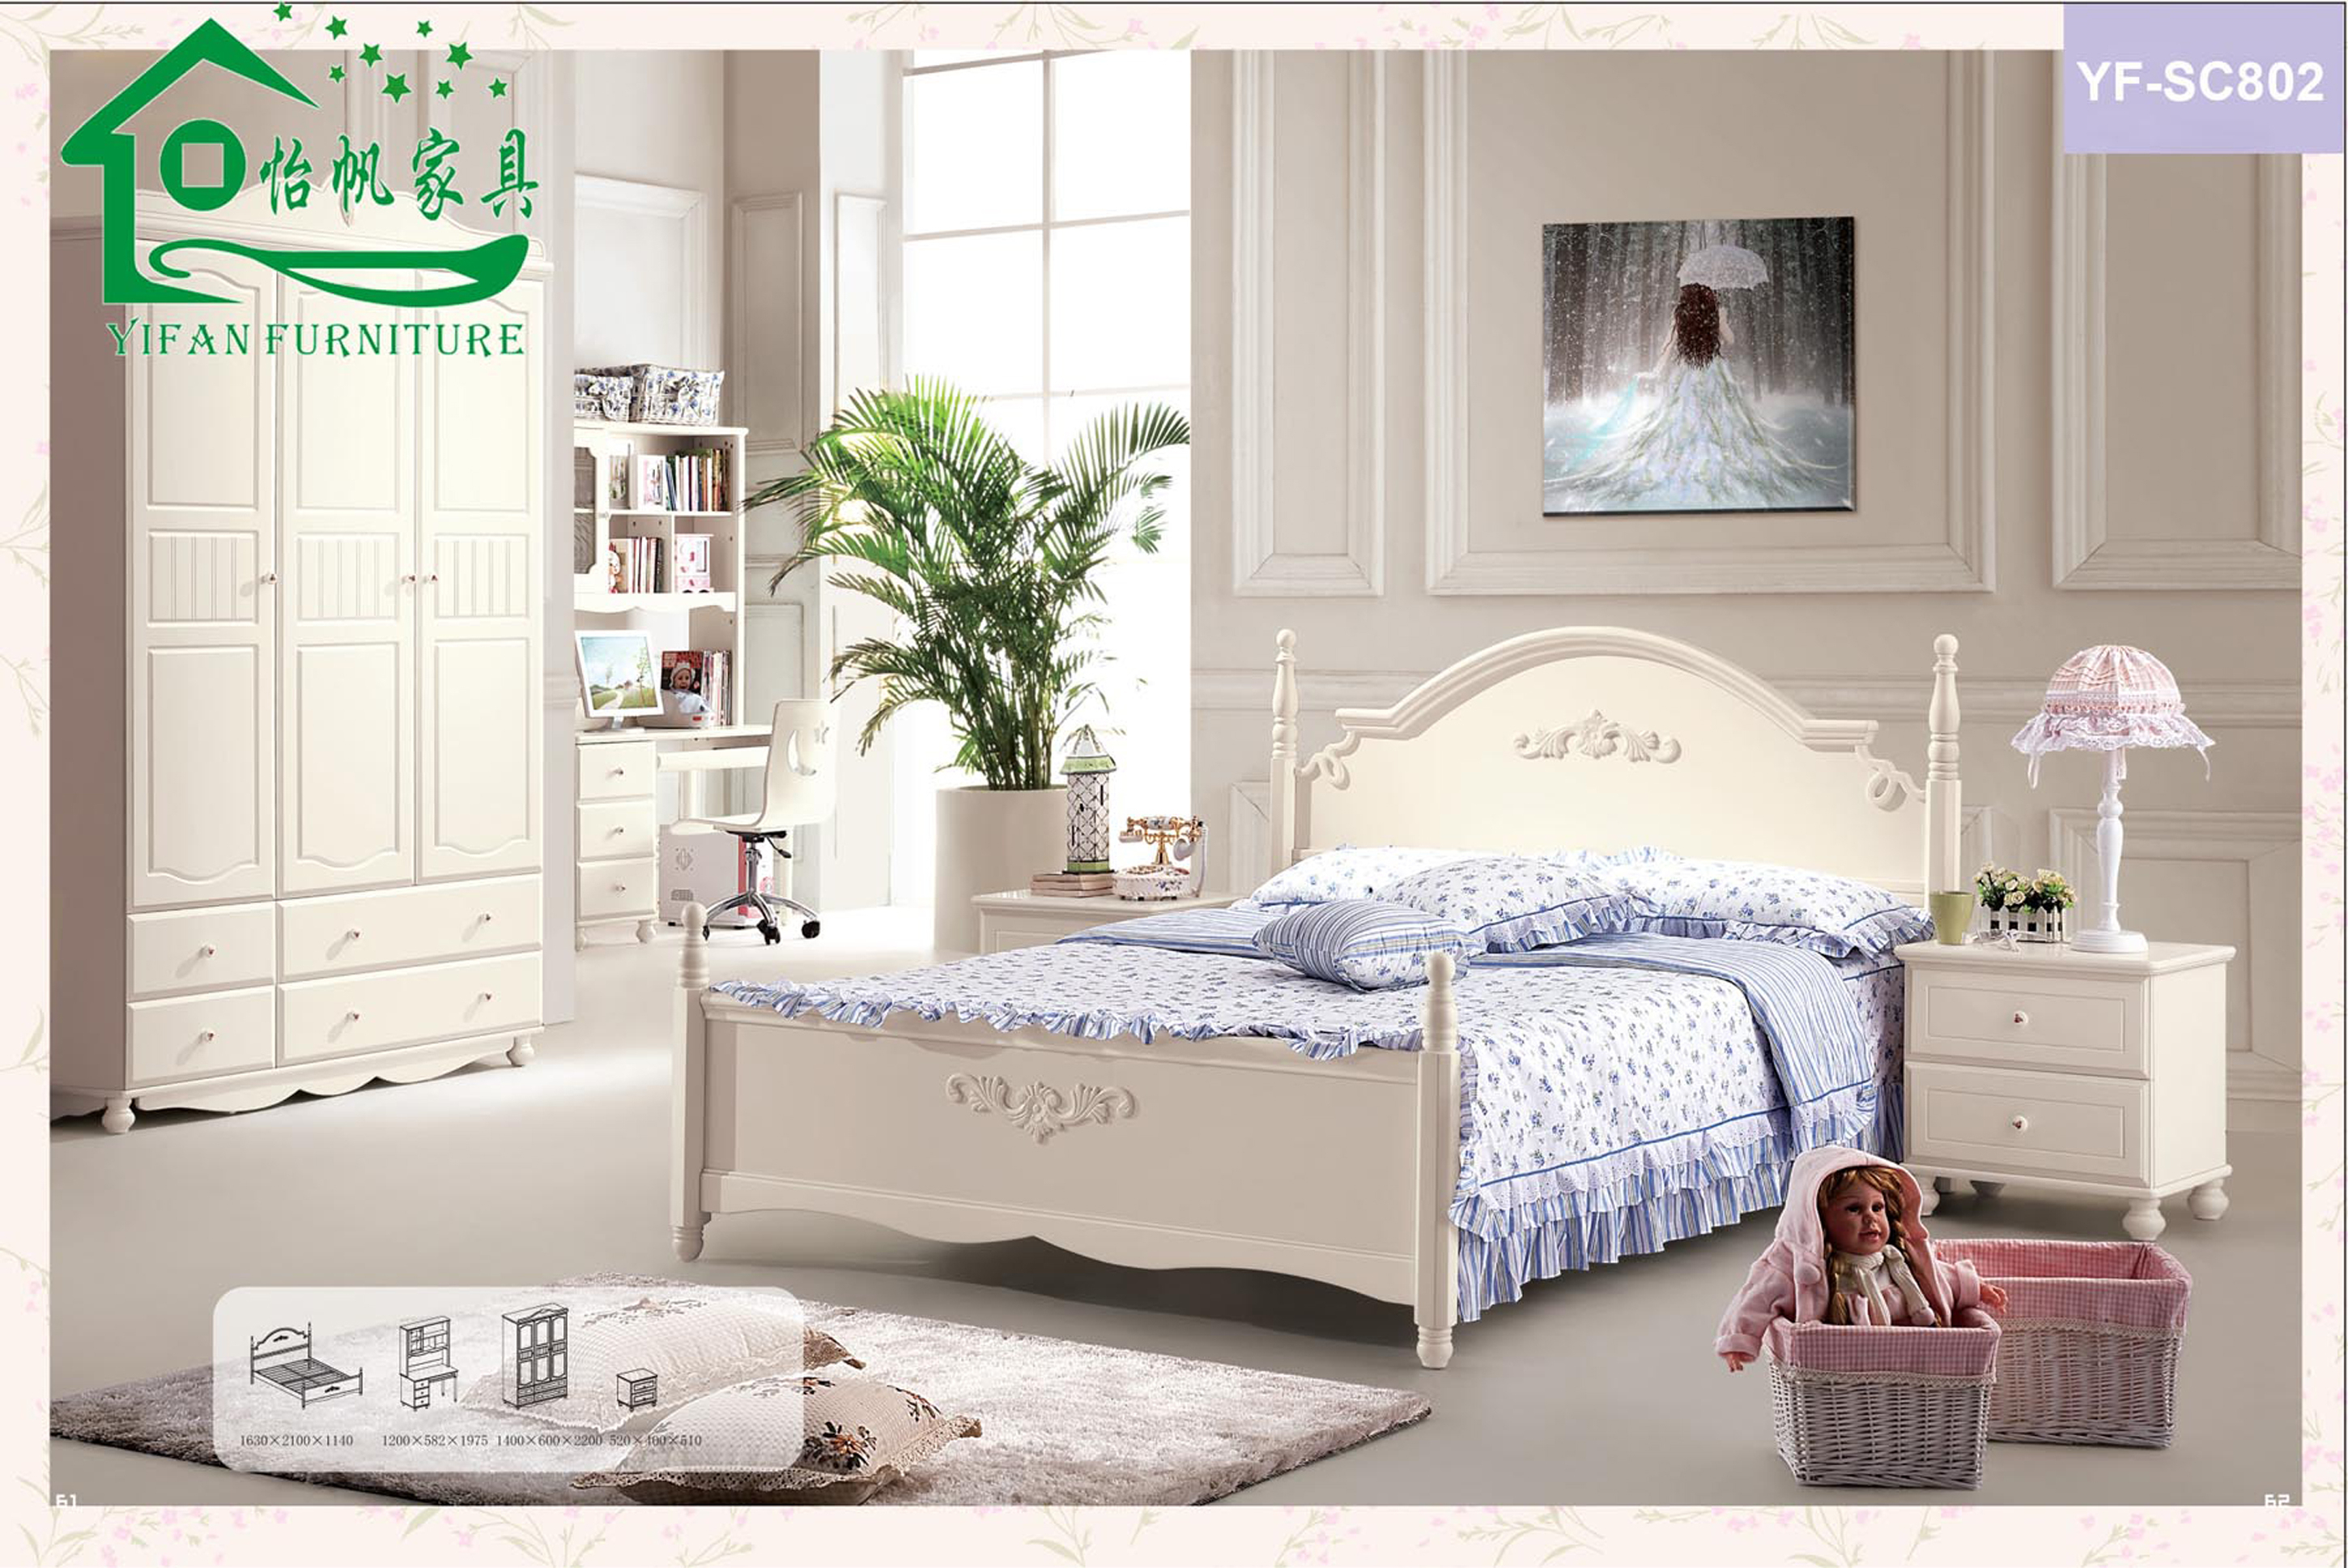 Luxury Children Bedroom Idea With White Bed Frame With Blue Bed Sheet White Night Stand With White Desk Lamp And White Wardrobe Lovable Children Bedroom Ideas (Image 52 of 123)